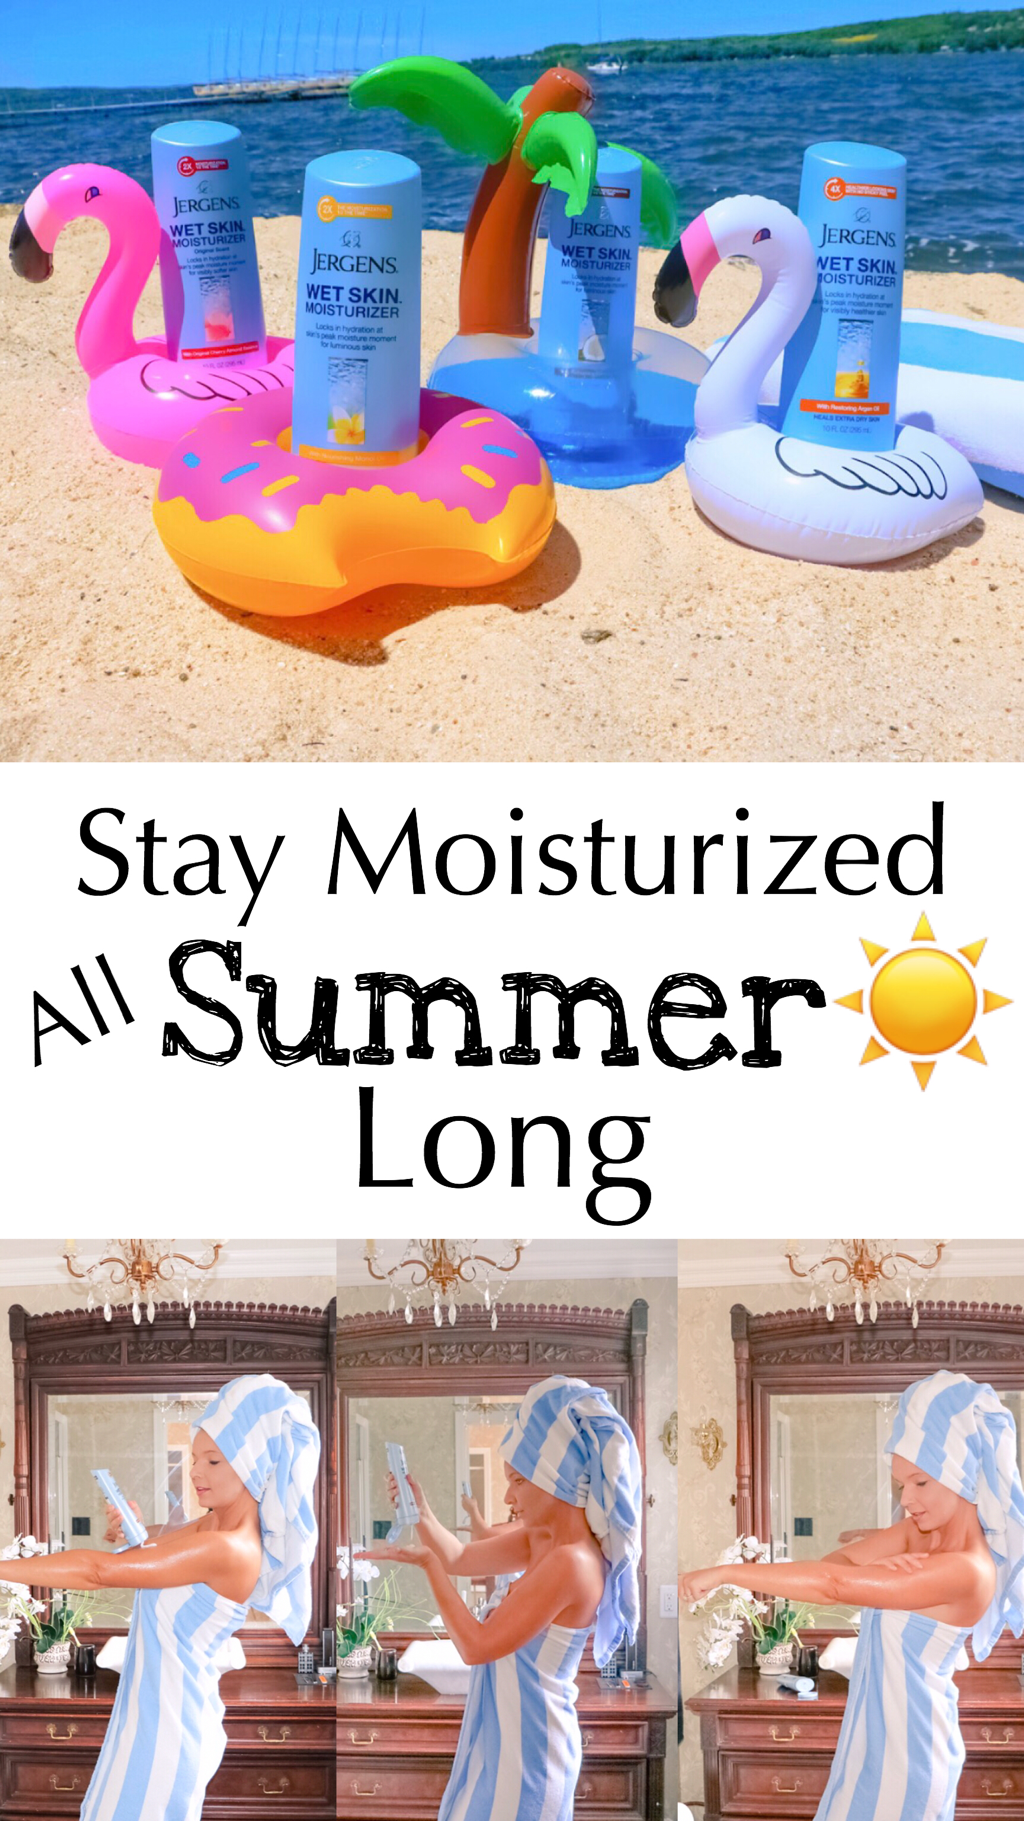 Stay Moisturized All Summer Long